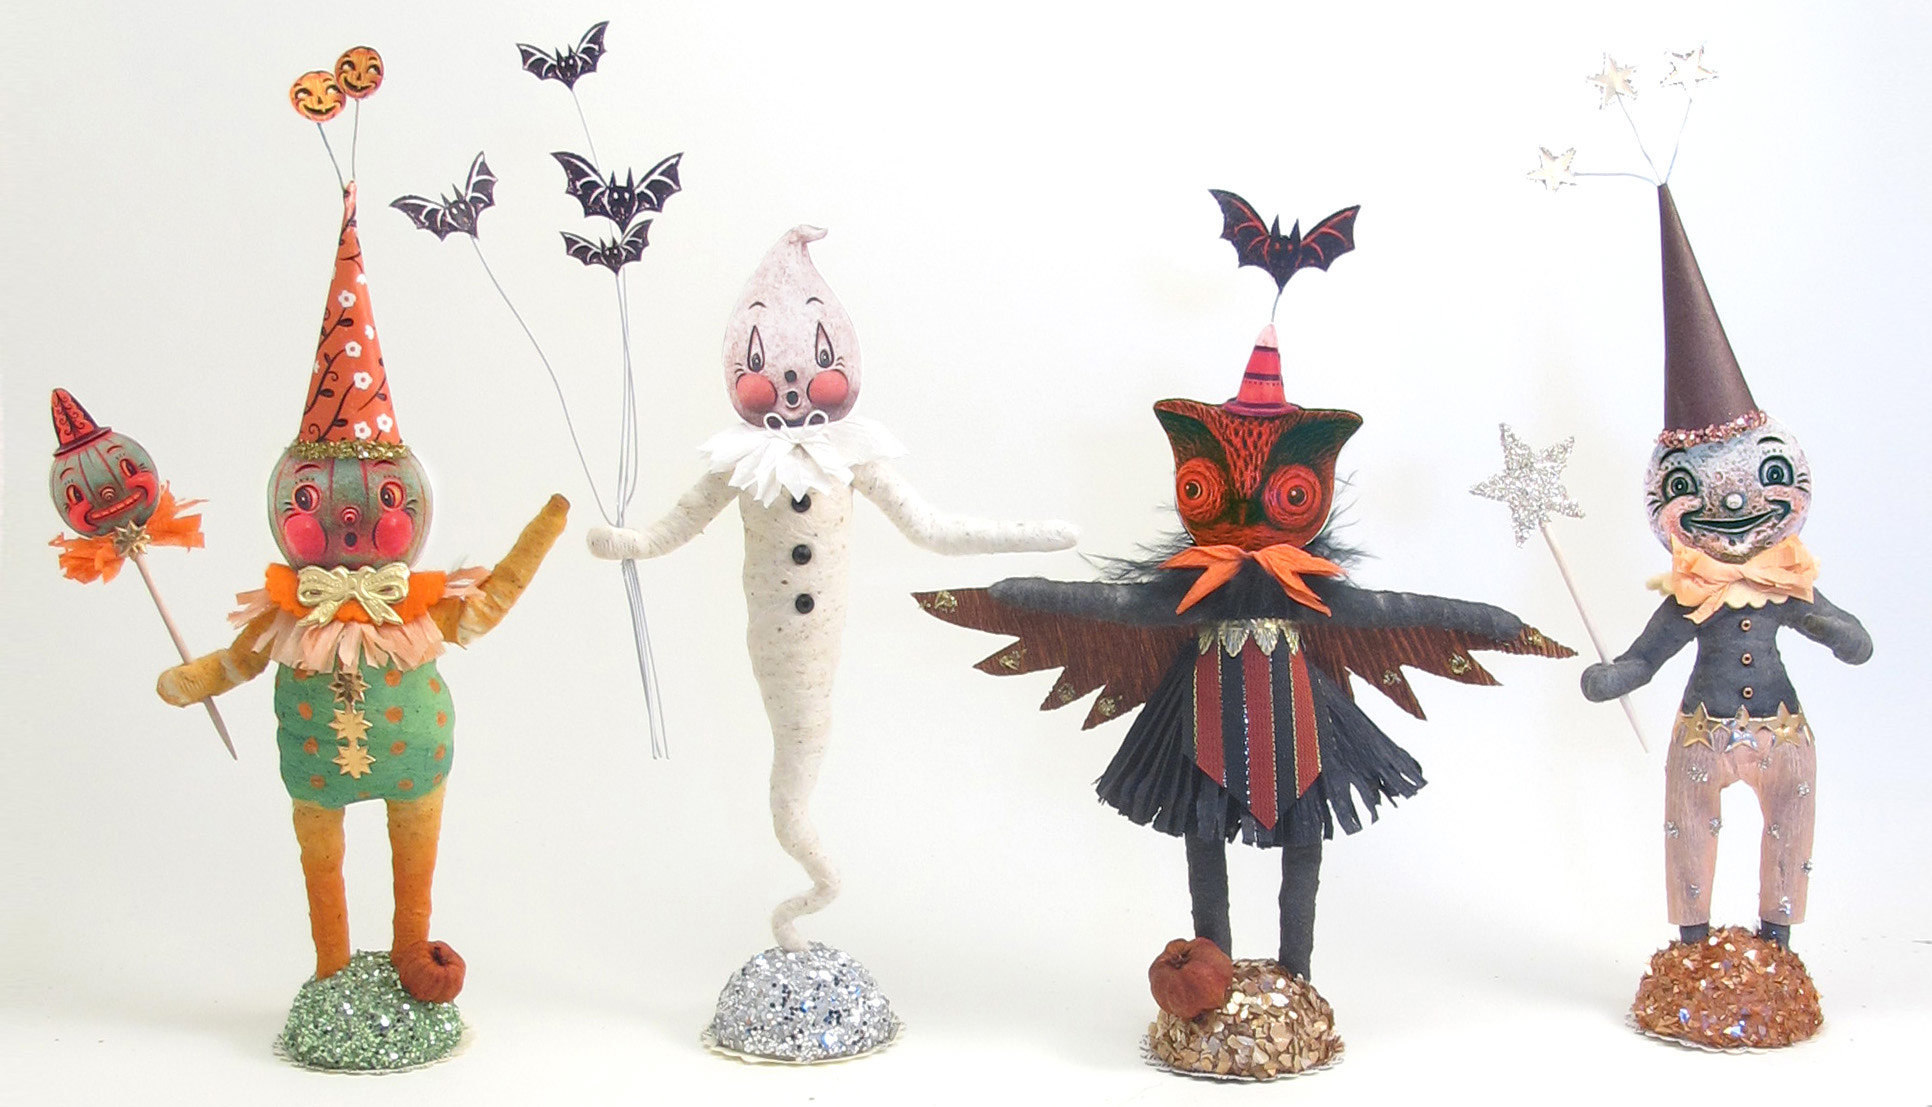 A classic green jack-o'-lantern, ghost, owl and moon make for a playful family of characters! Each is handmade from Vintage by Crystal, and they do look spooktacular, clustered in groups!